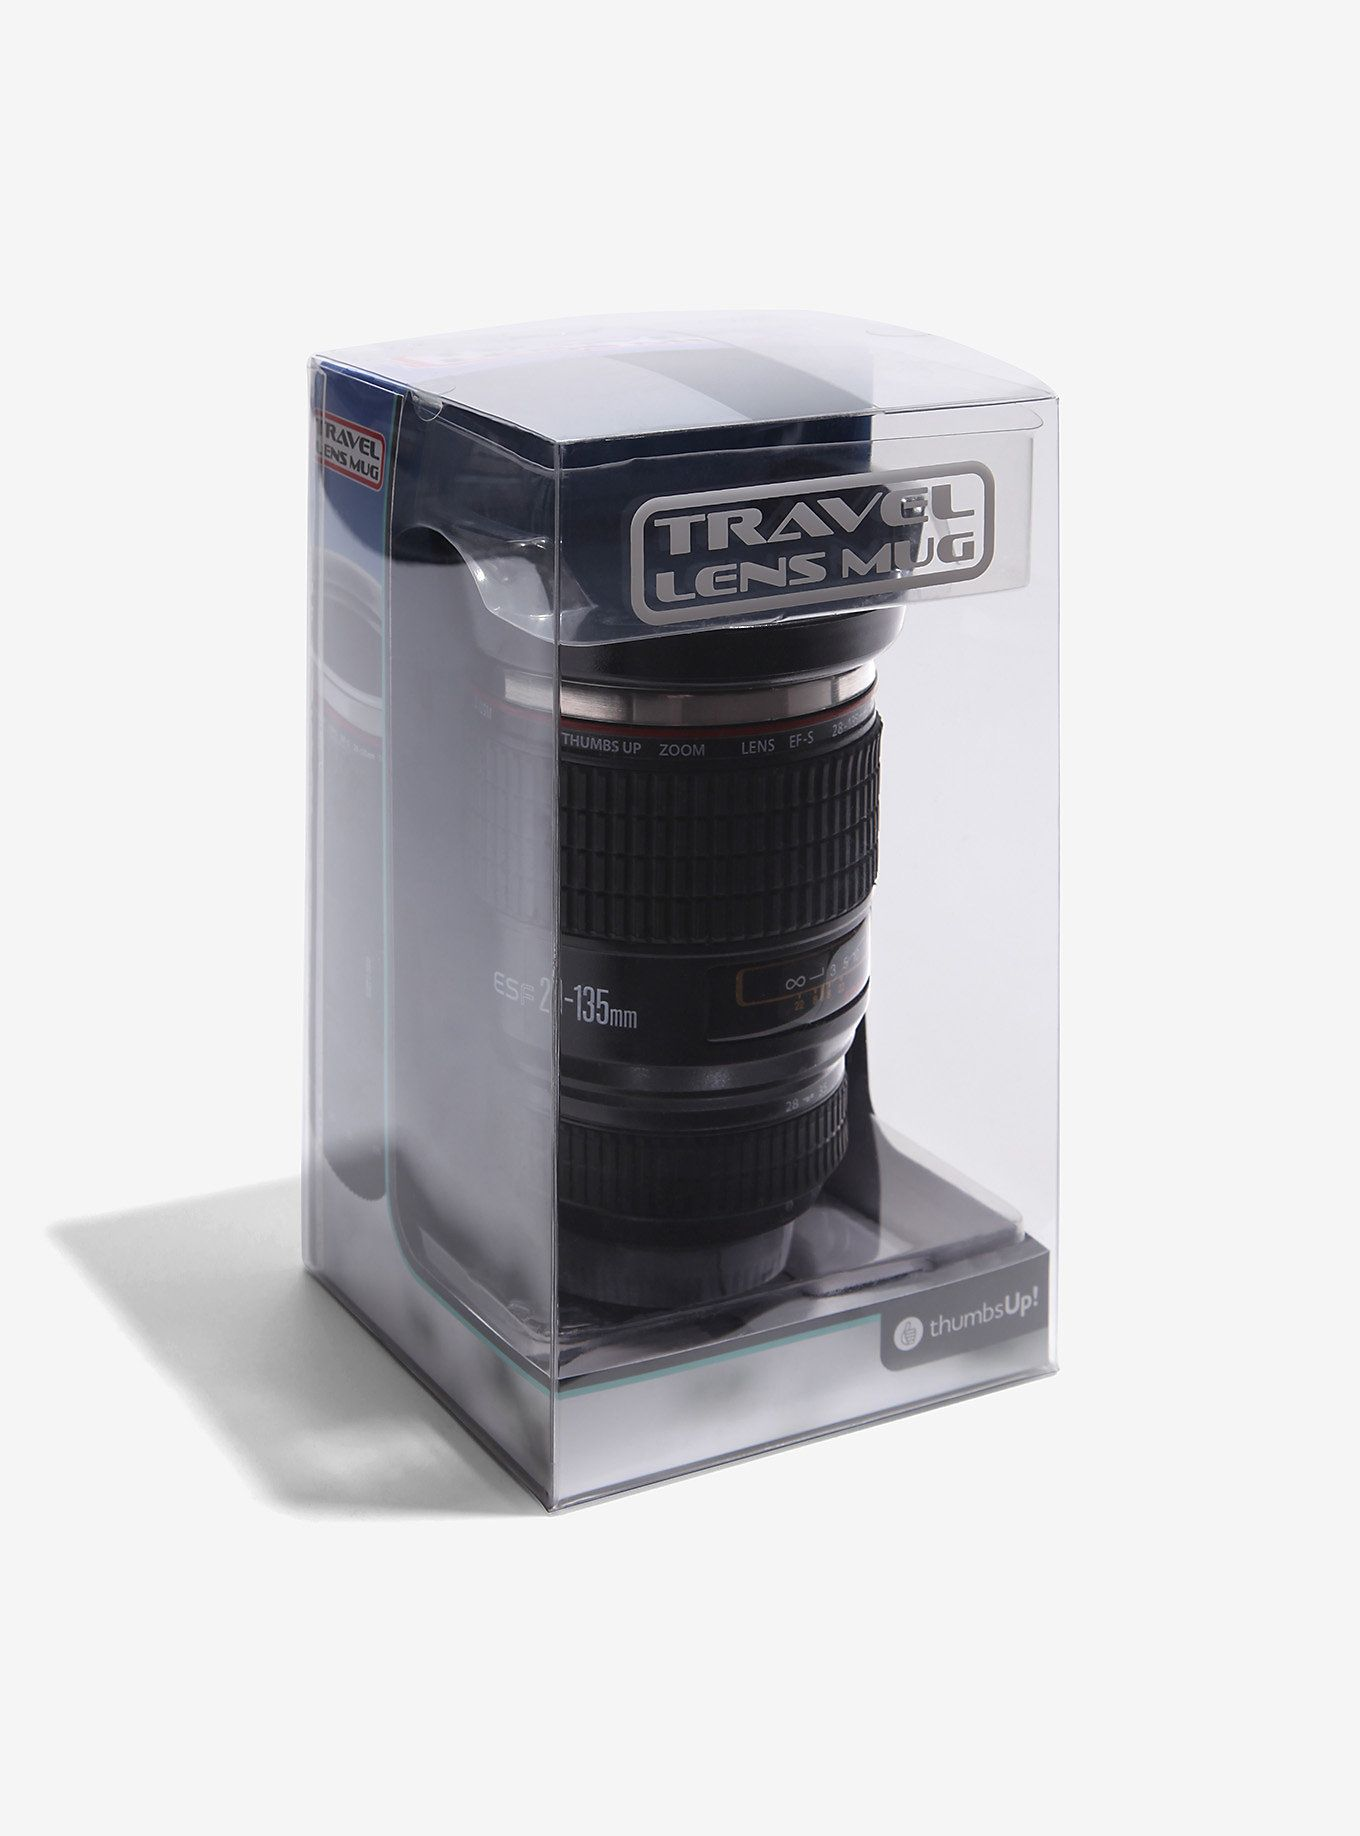 Camera Lens Travel Coffee Mug: Thumbs Up Cup | BoxLunch